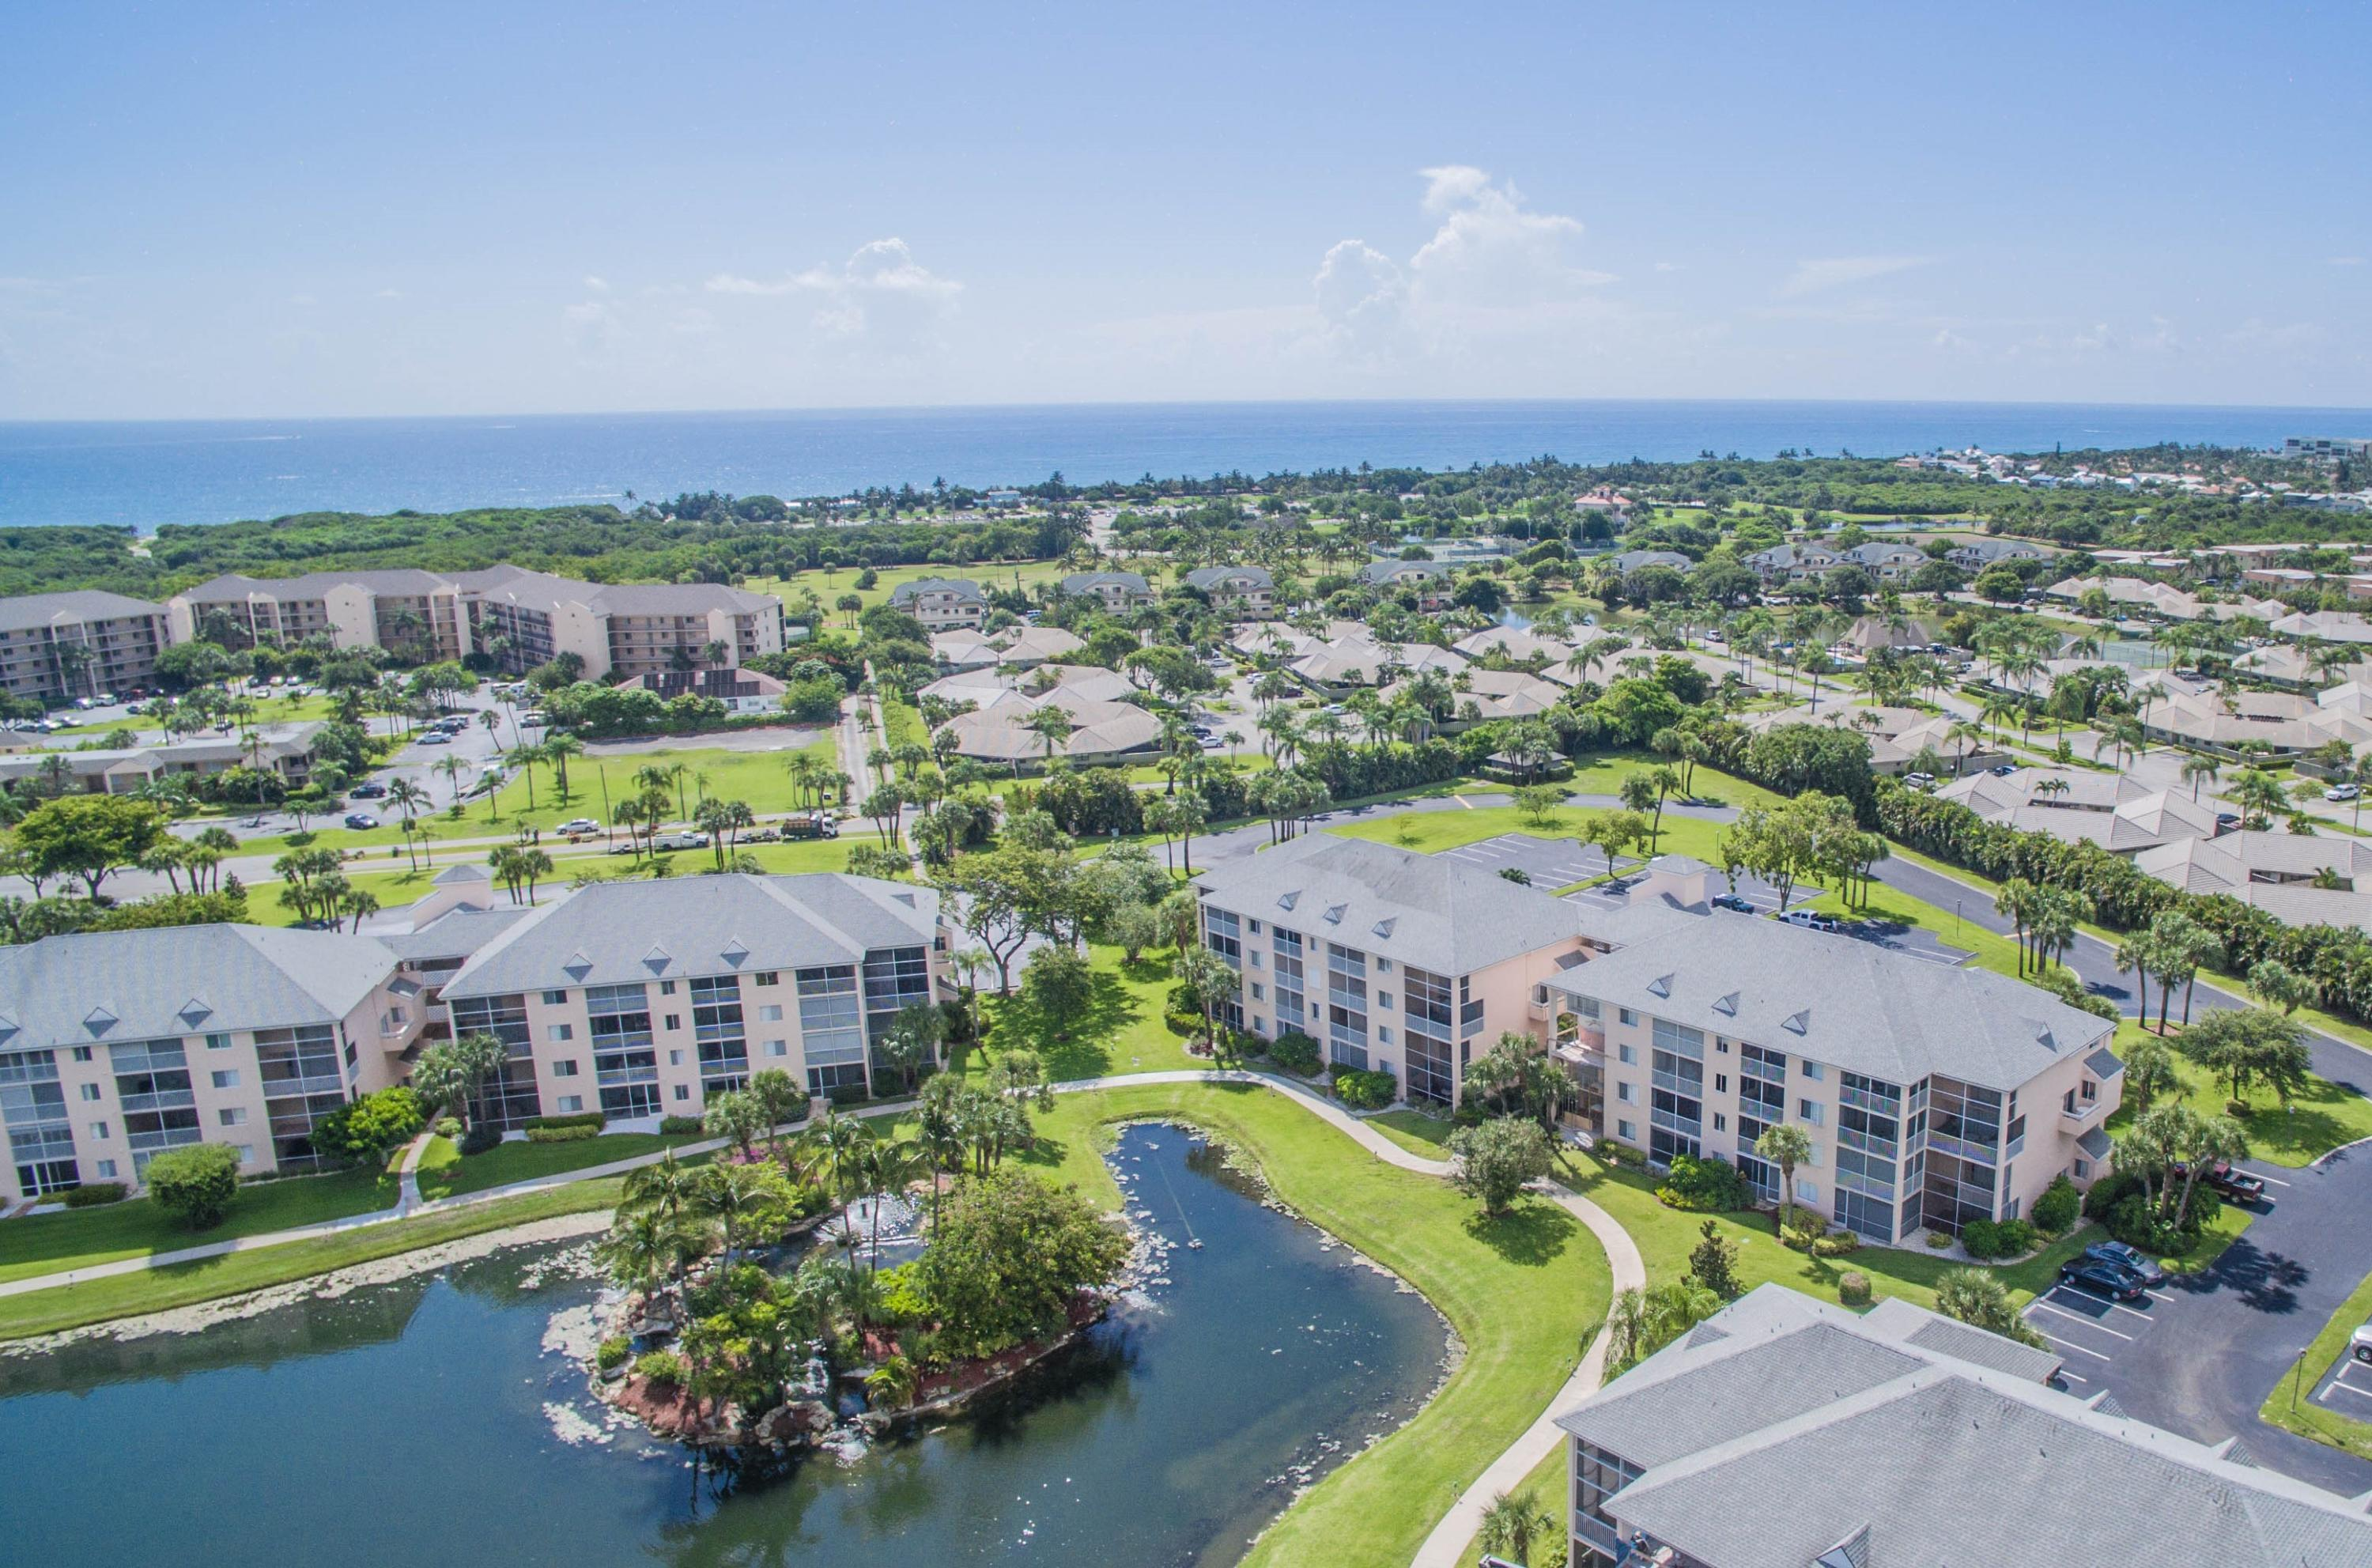 353 Us Highway 1, Jupiter, Florida 33477, 1 Bedroom Bedrooms, ,1.1 BathroomsBathrooms,Condo/Coop,For Rent,JUPITER BAY WEST,Us Highway 1,4,RX-10531744